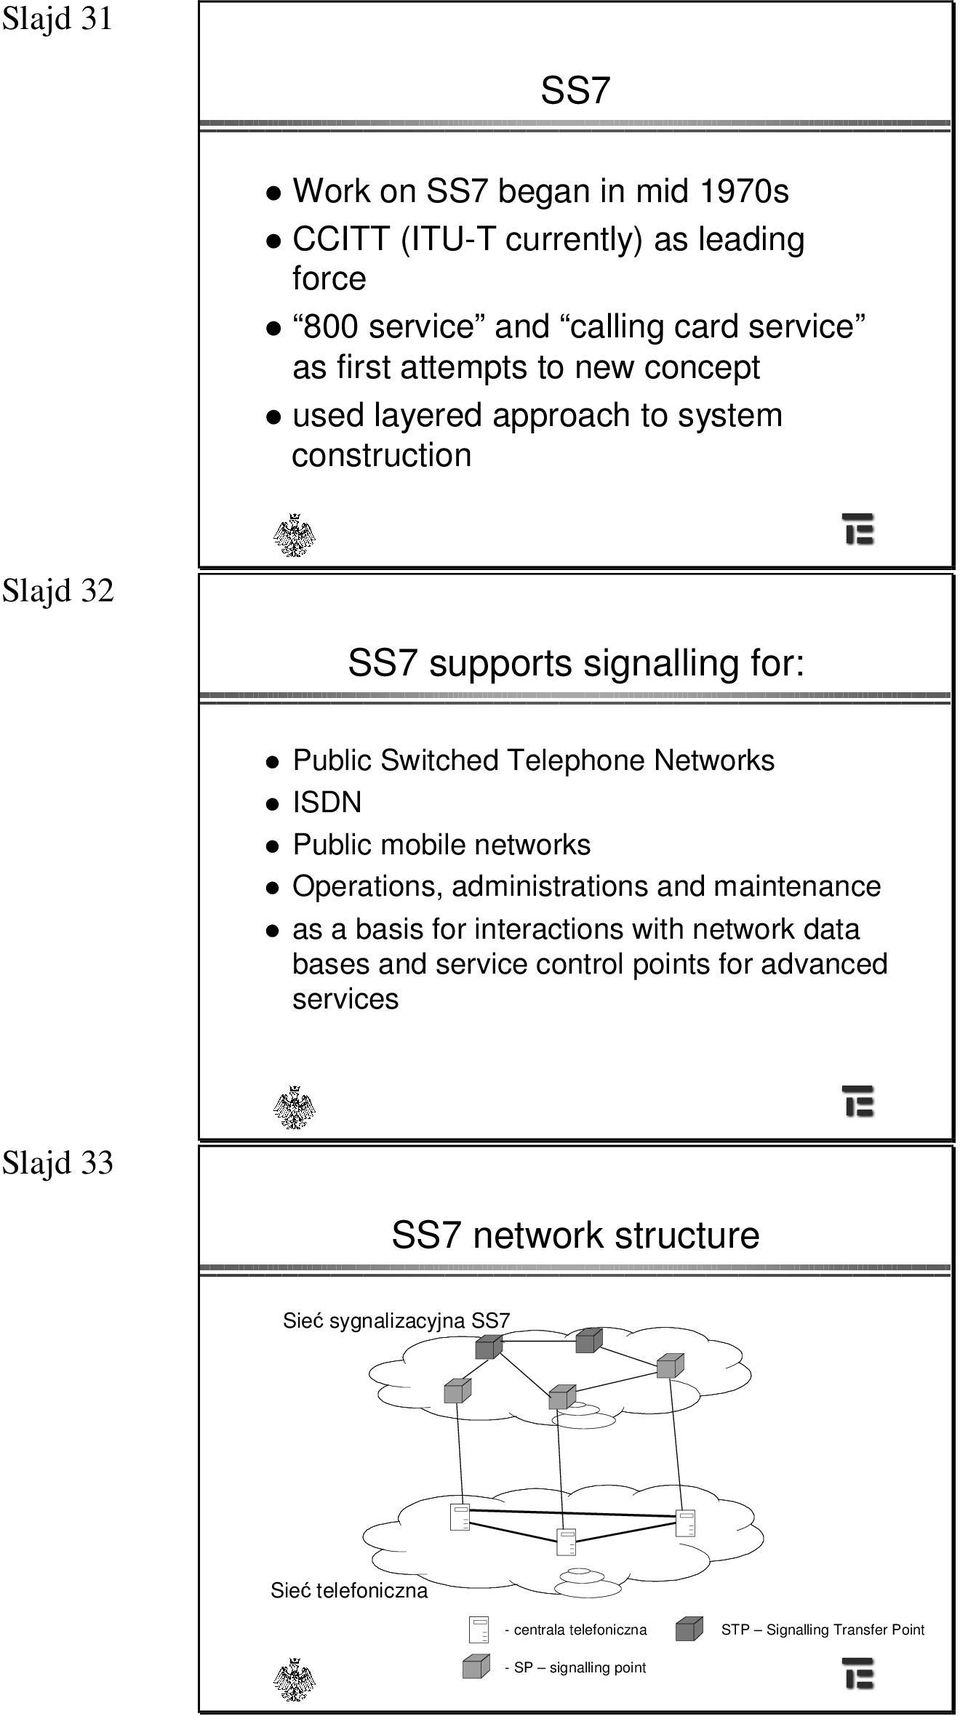 networks Operations, administrations and maintenance as a basis for interactions with network data bases and service control points for advanced